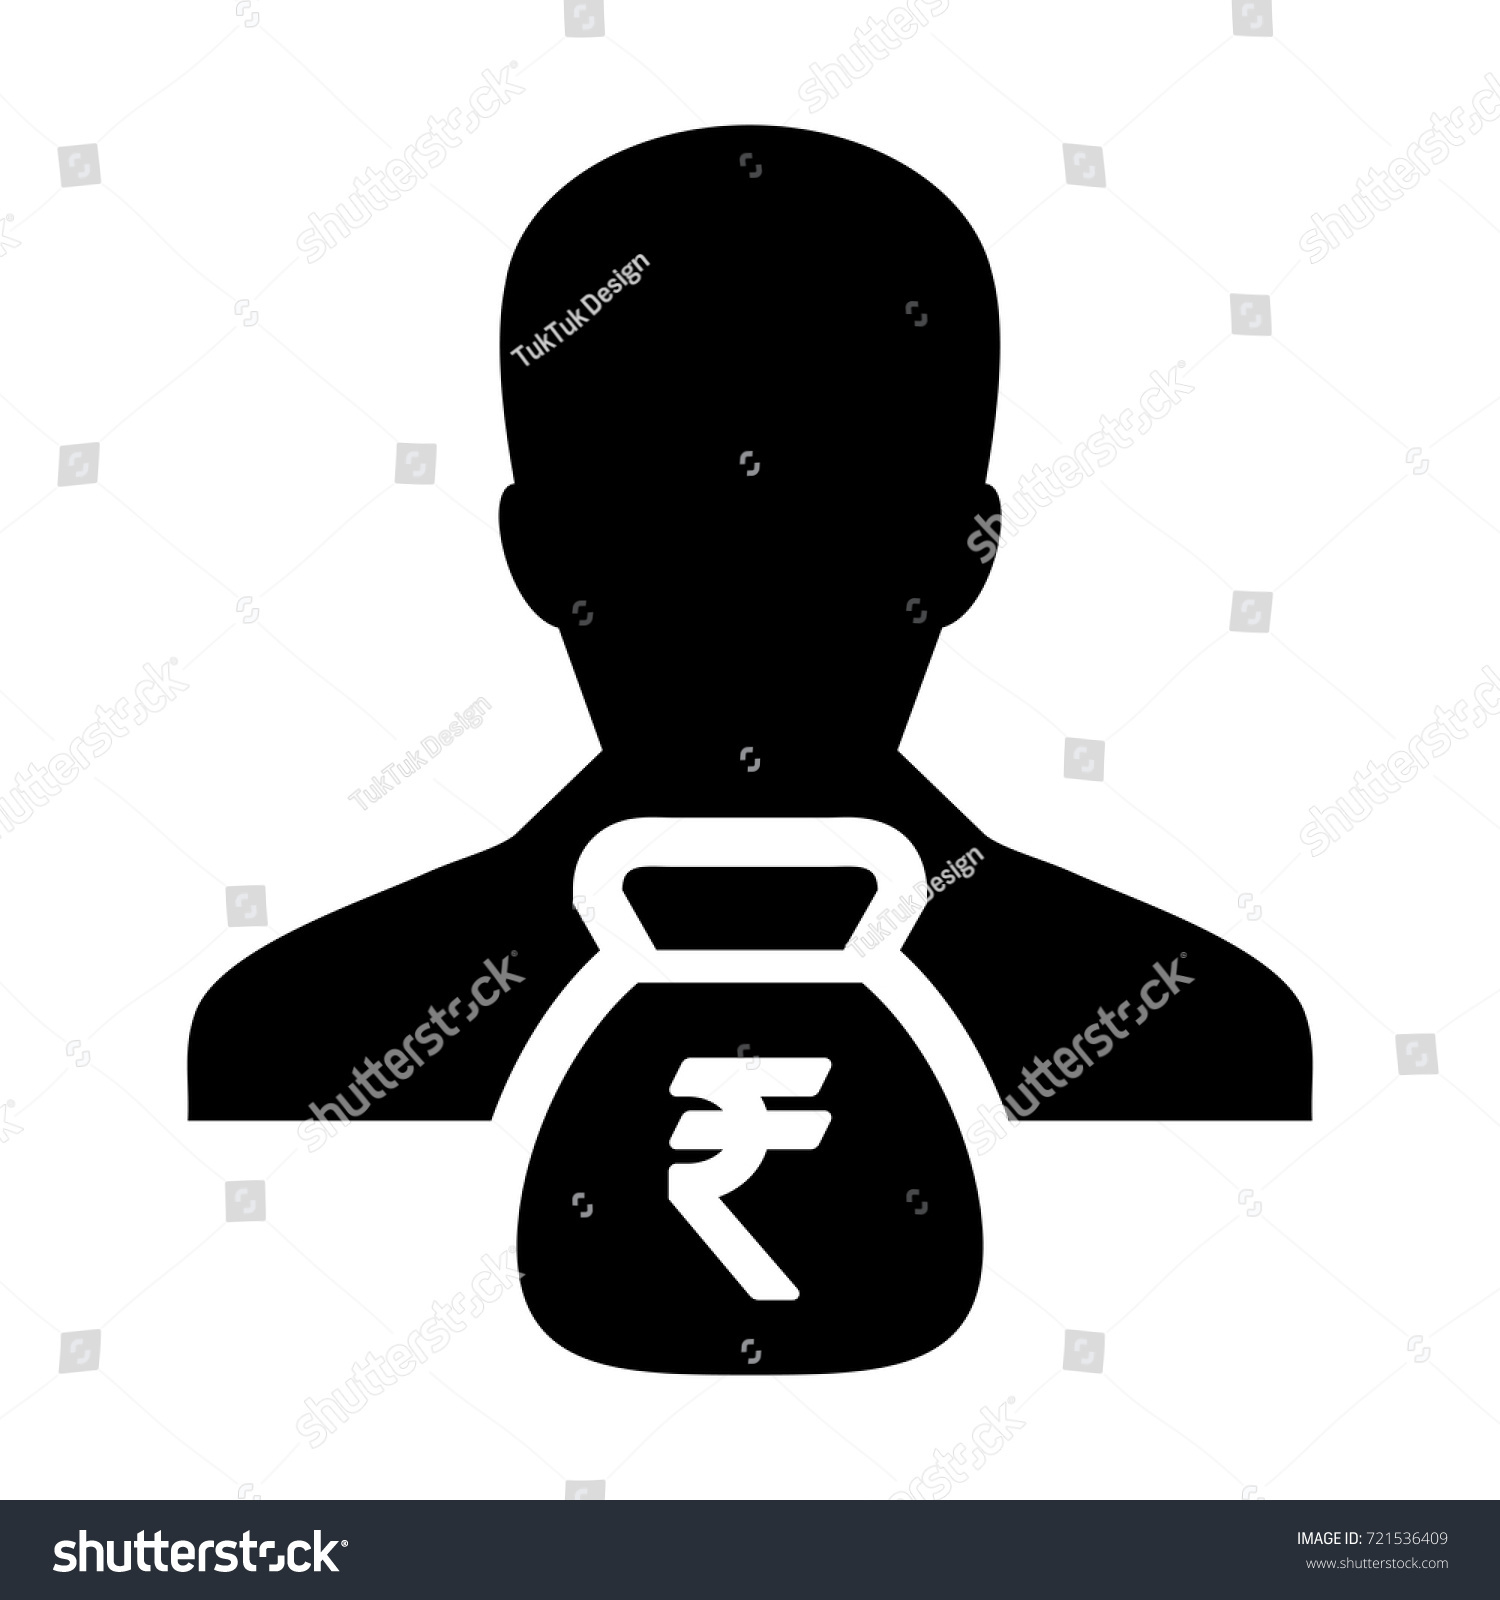 Indian rupee symbol icon vector person stock vector 721536409 indian rupee symbol icon vector person male sign avatar with money bag for business finance and biocorpaavc Choice Image